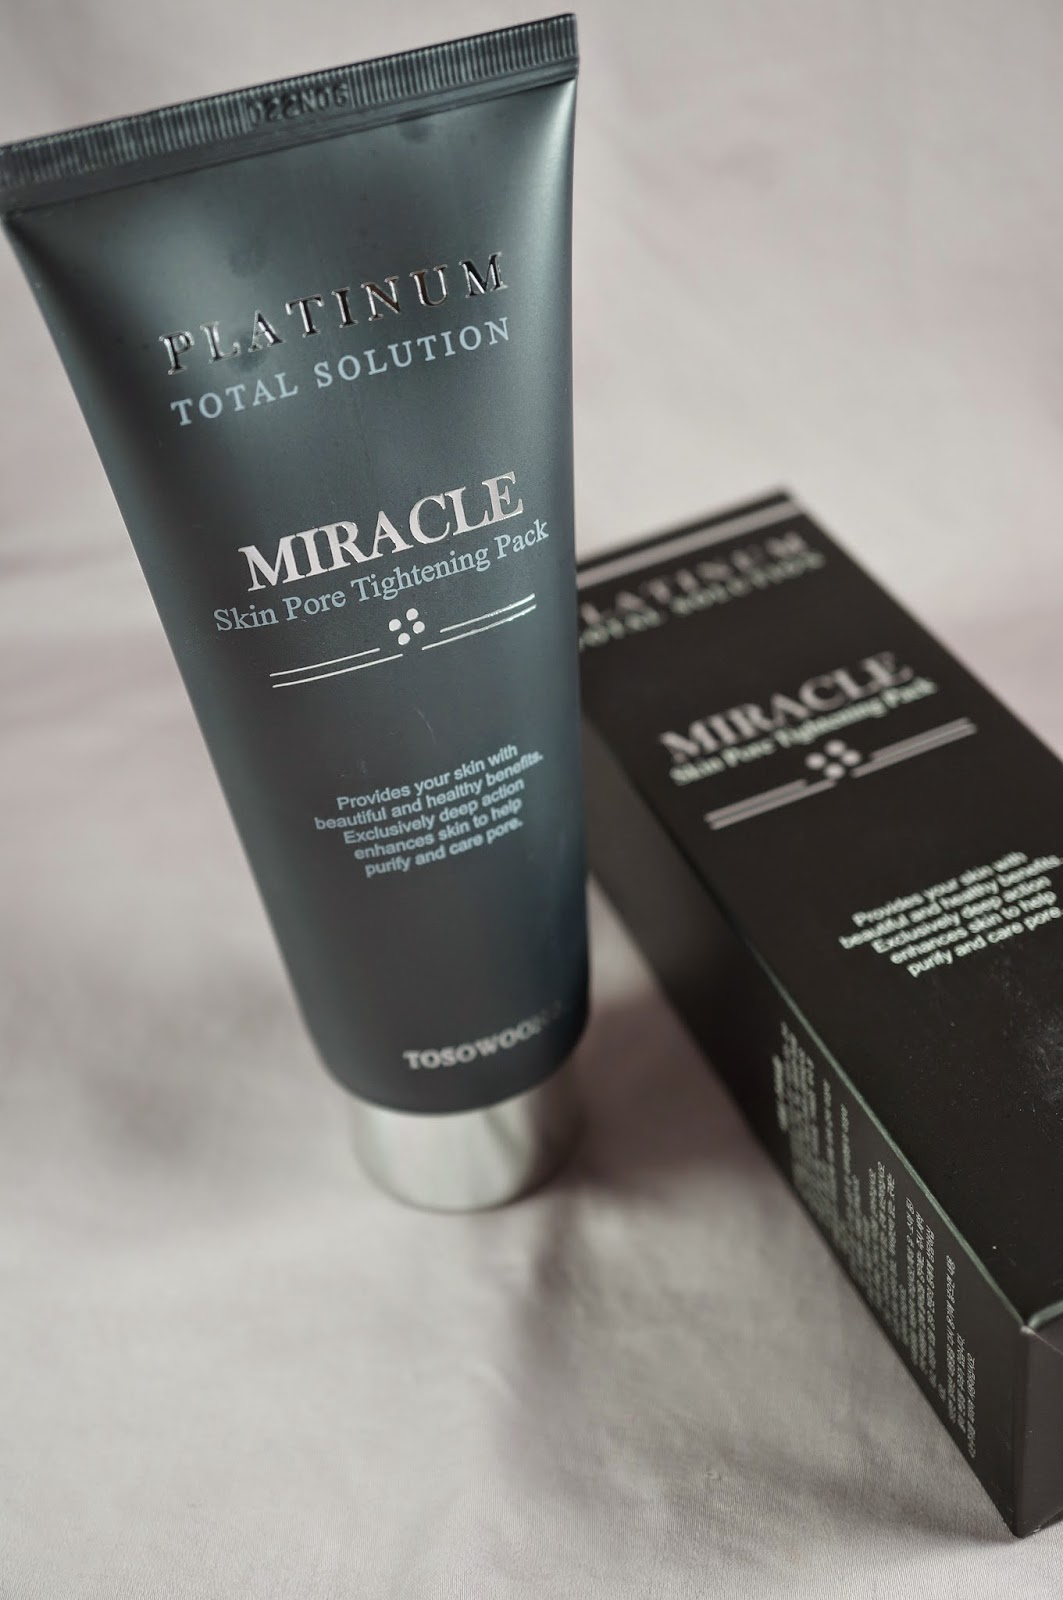 Memebox Special #42 OMG Unboxing Review Tosowoong Platinum Total Solution Miracle Skin Pore Tightening Pack